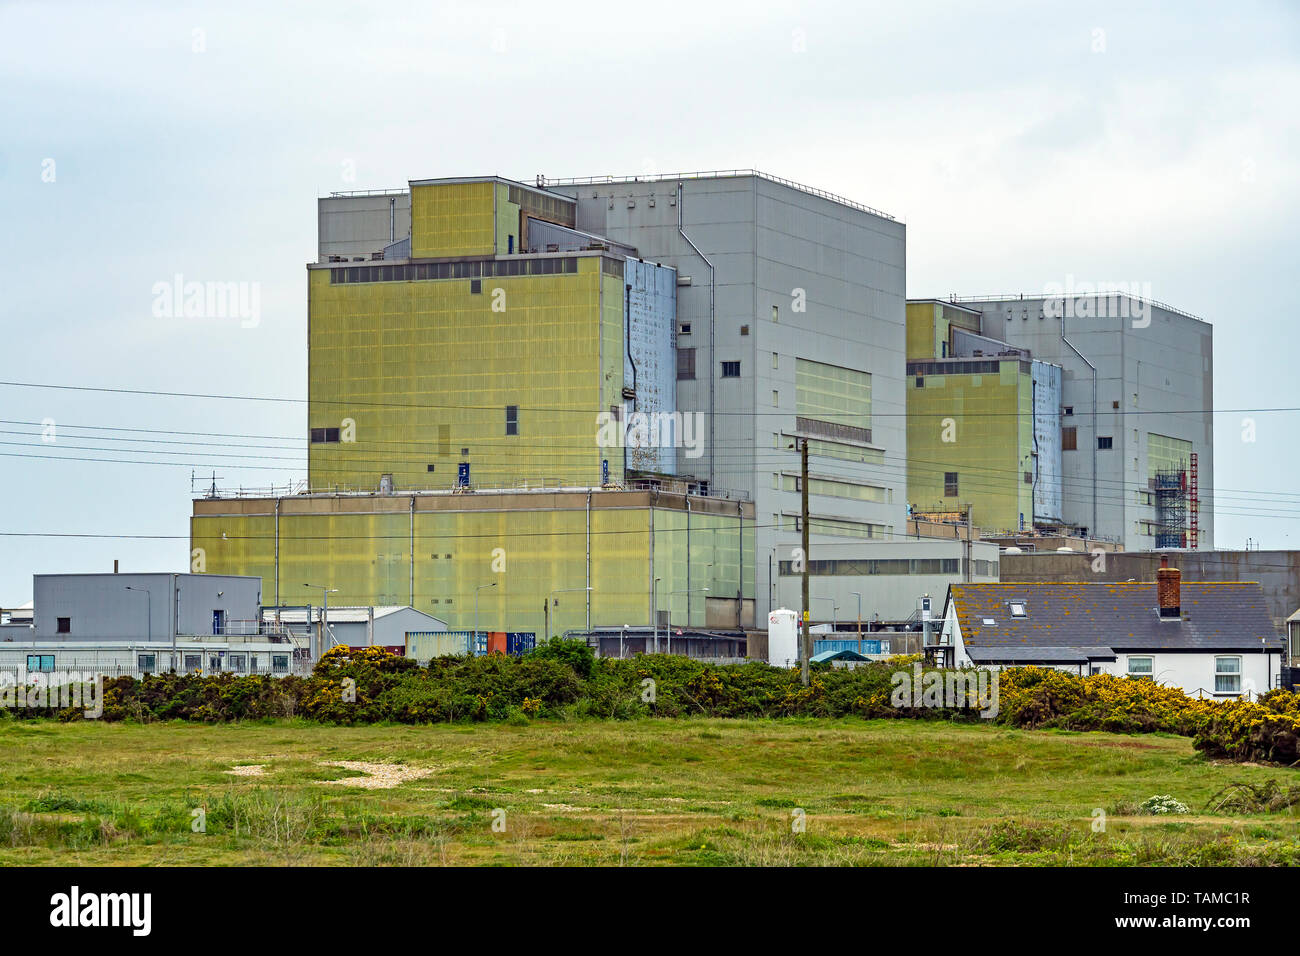 Dungeness nuclear power station in Dungeness Kent England UK - Stock Image